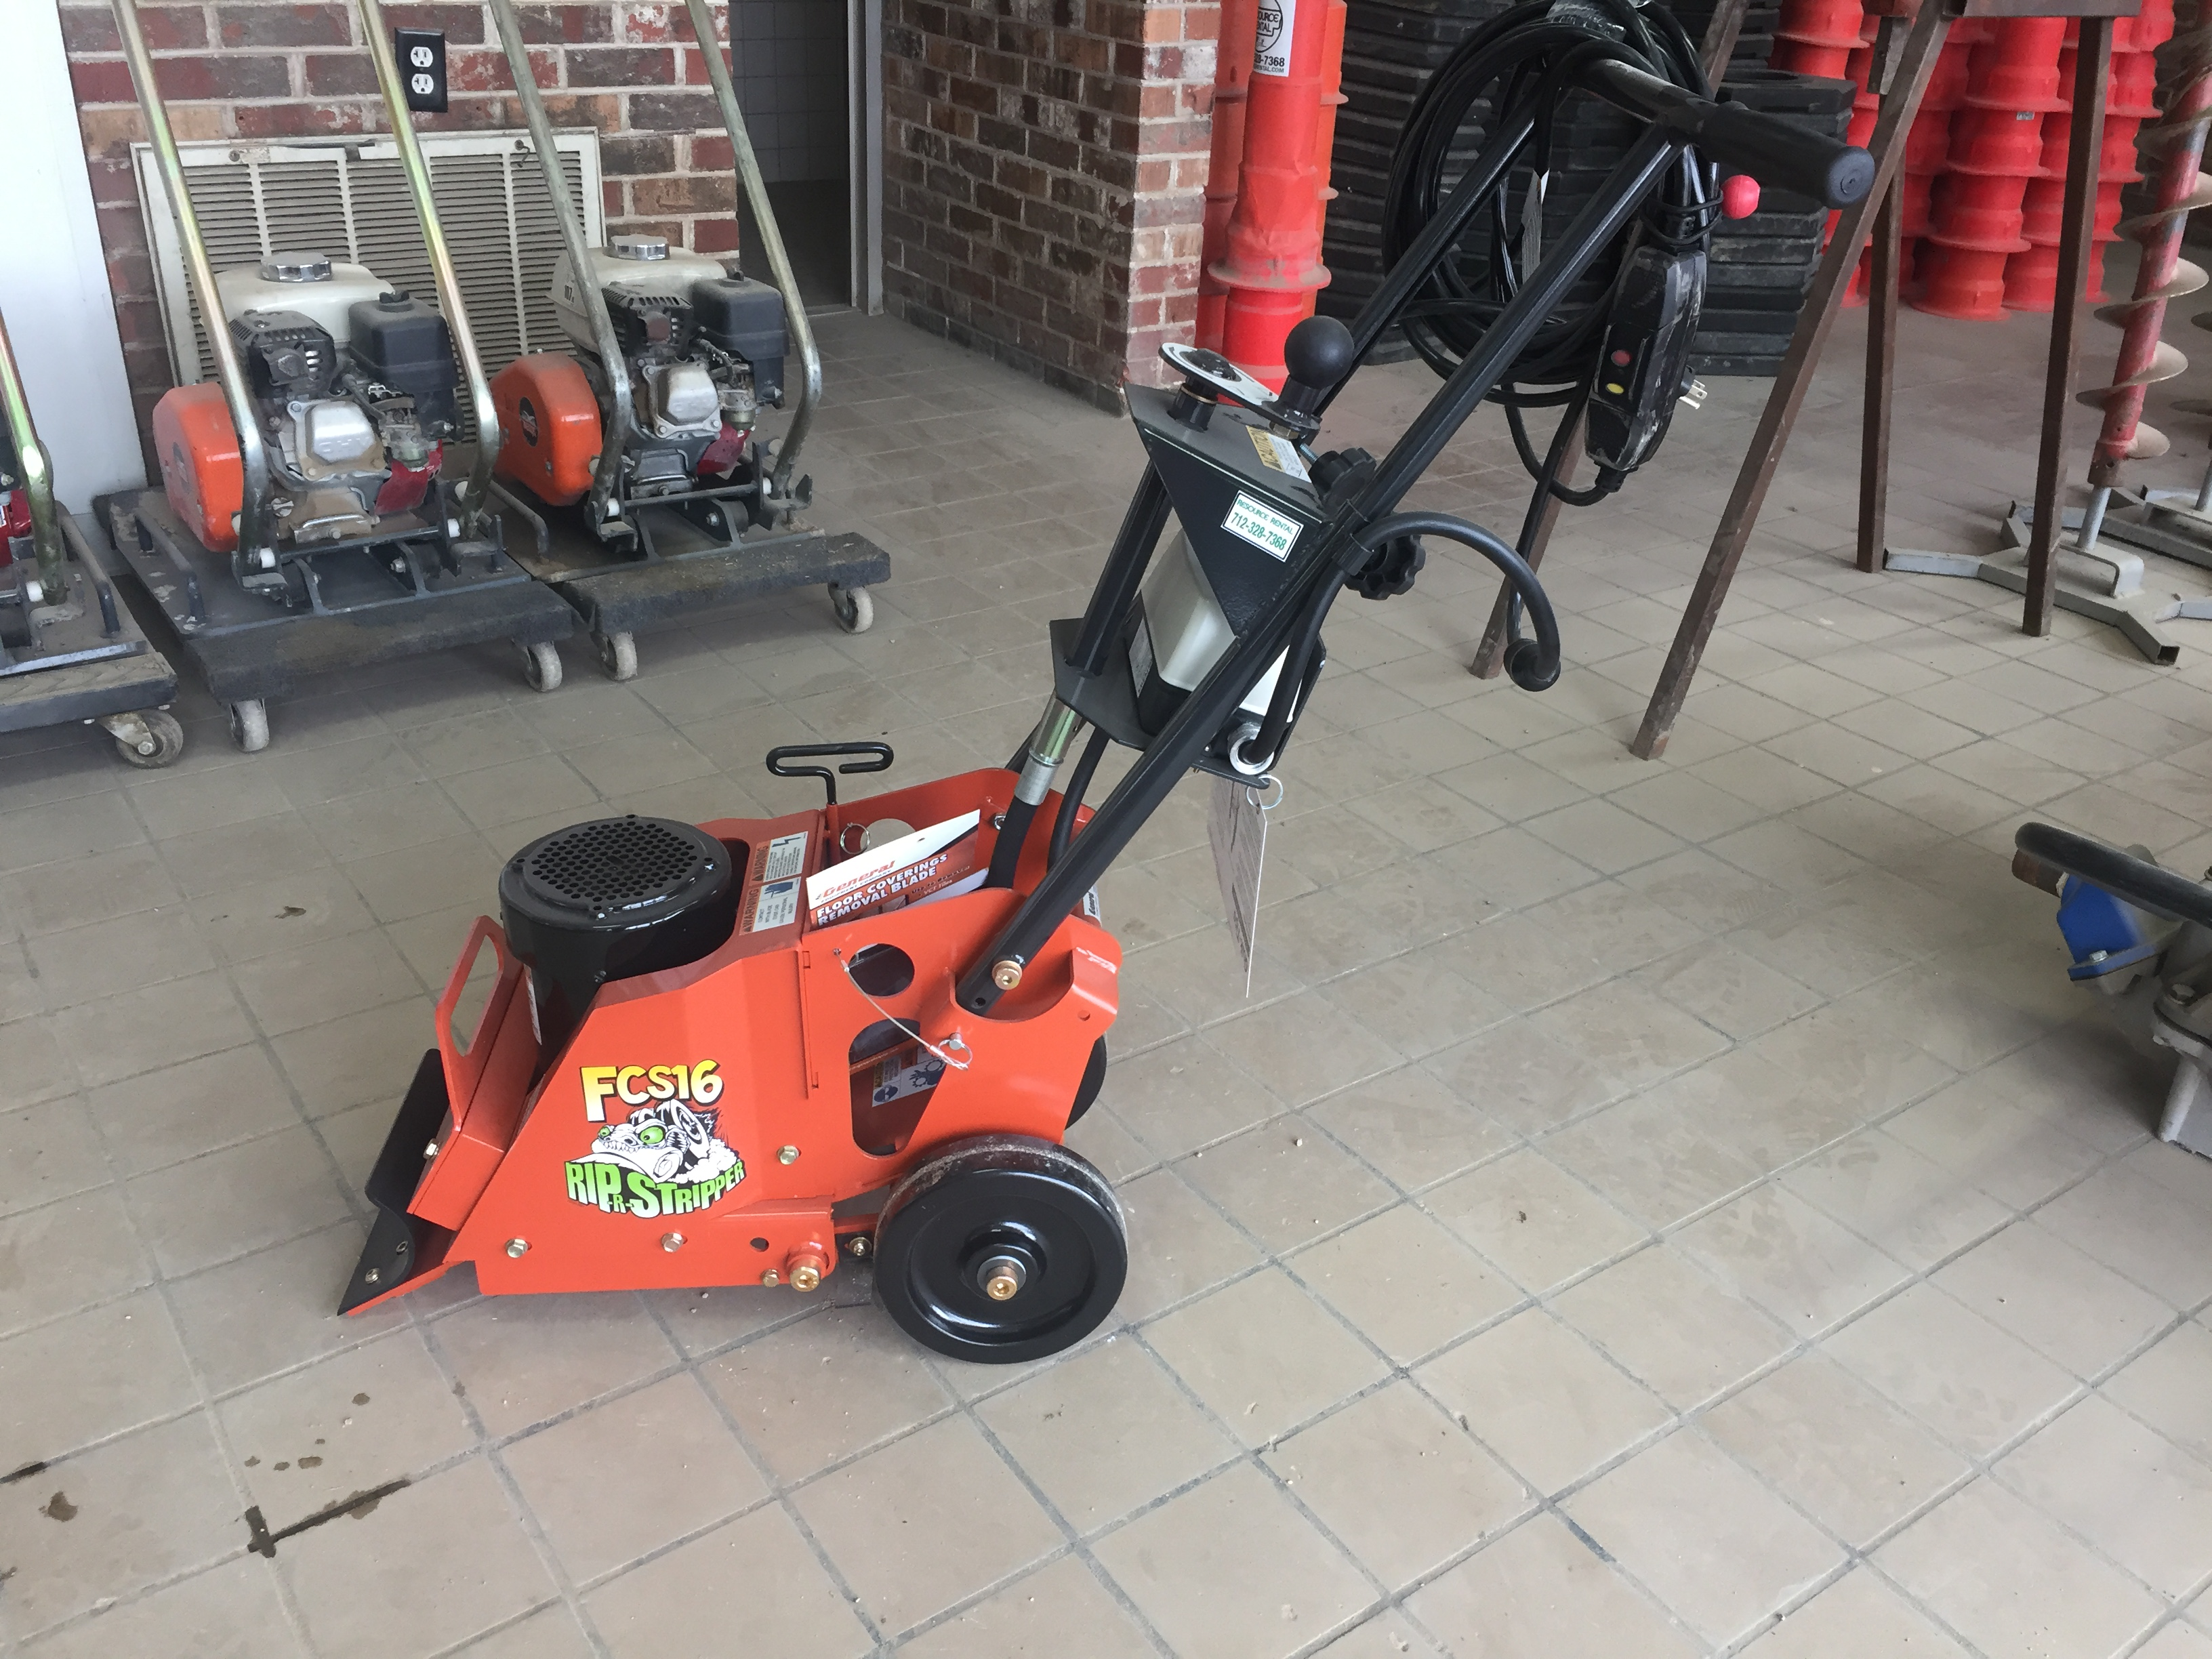 a finish grand s designed and in stripping apply applicator upgrade features hose to concrete floor polishing resurfacing finale rental flexible access coatings areas nozzle chemical smaller machine aztec thee spray products